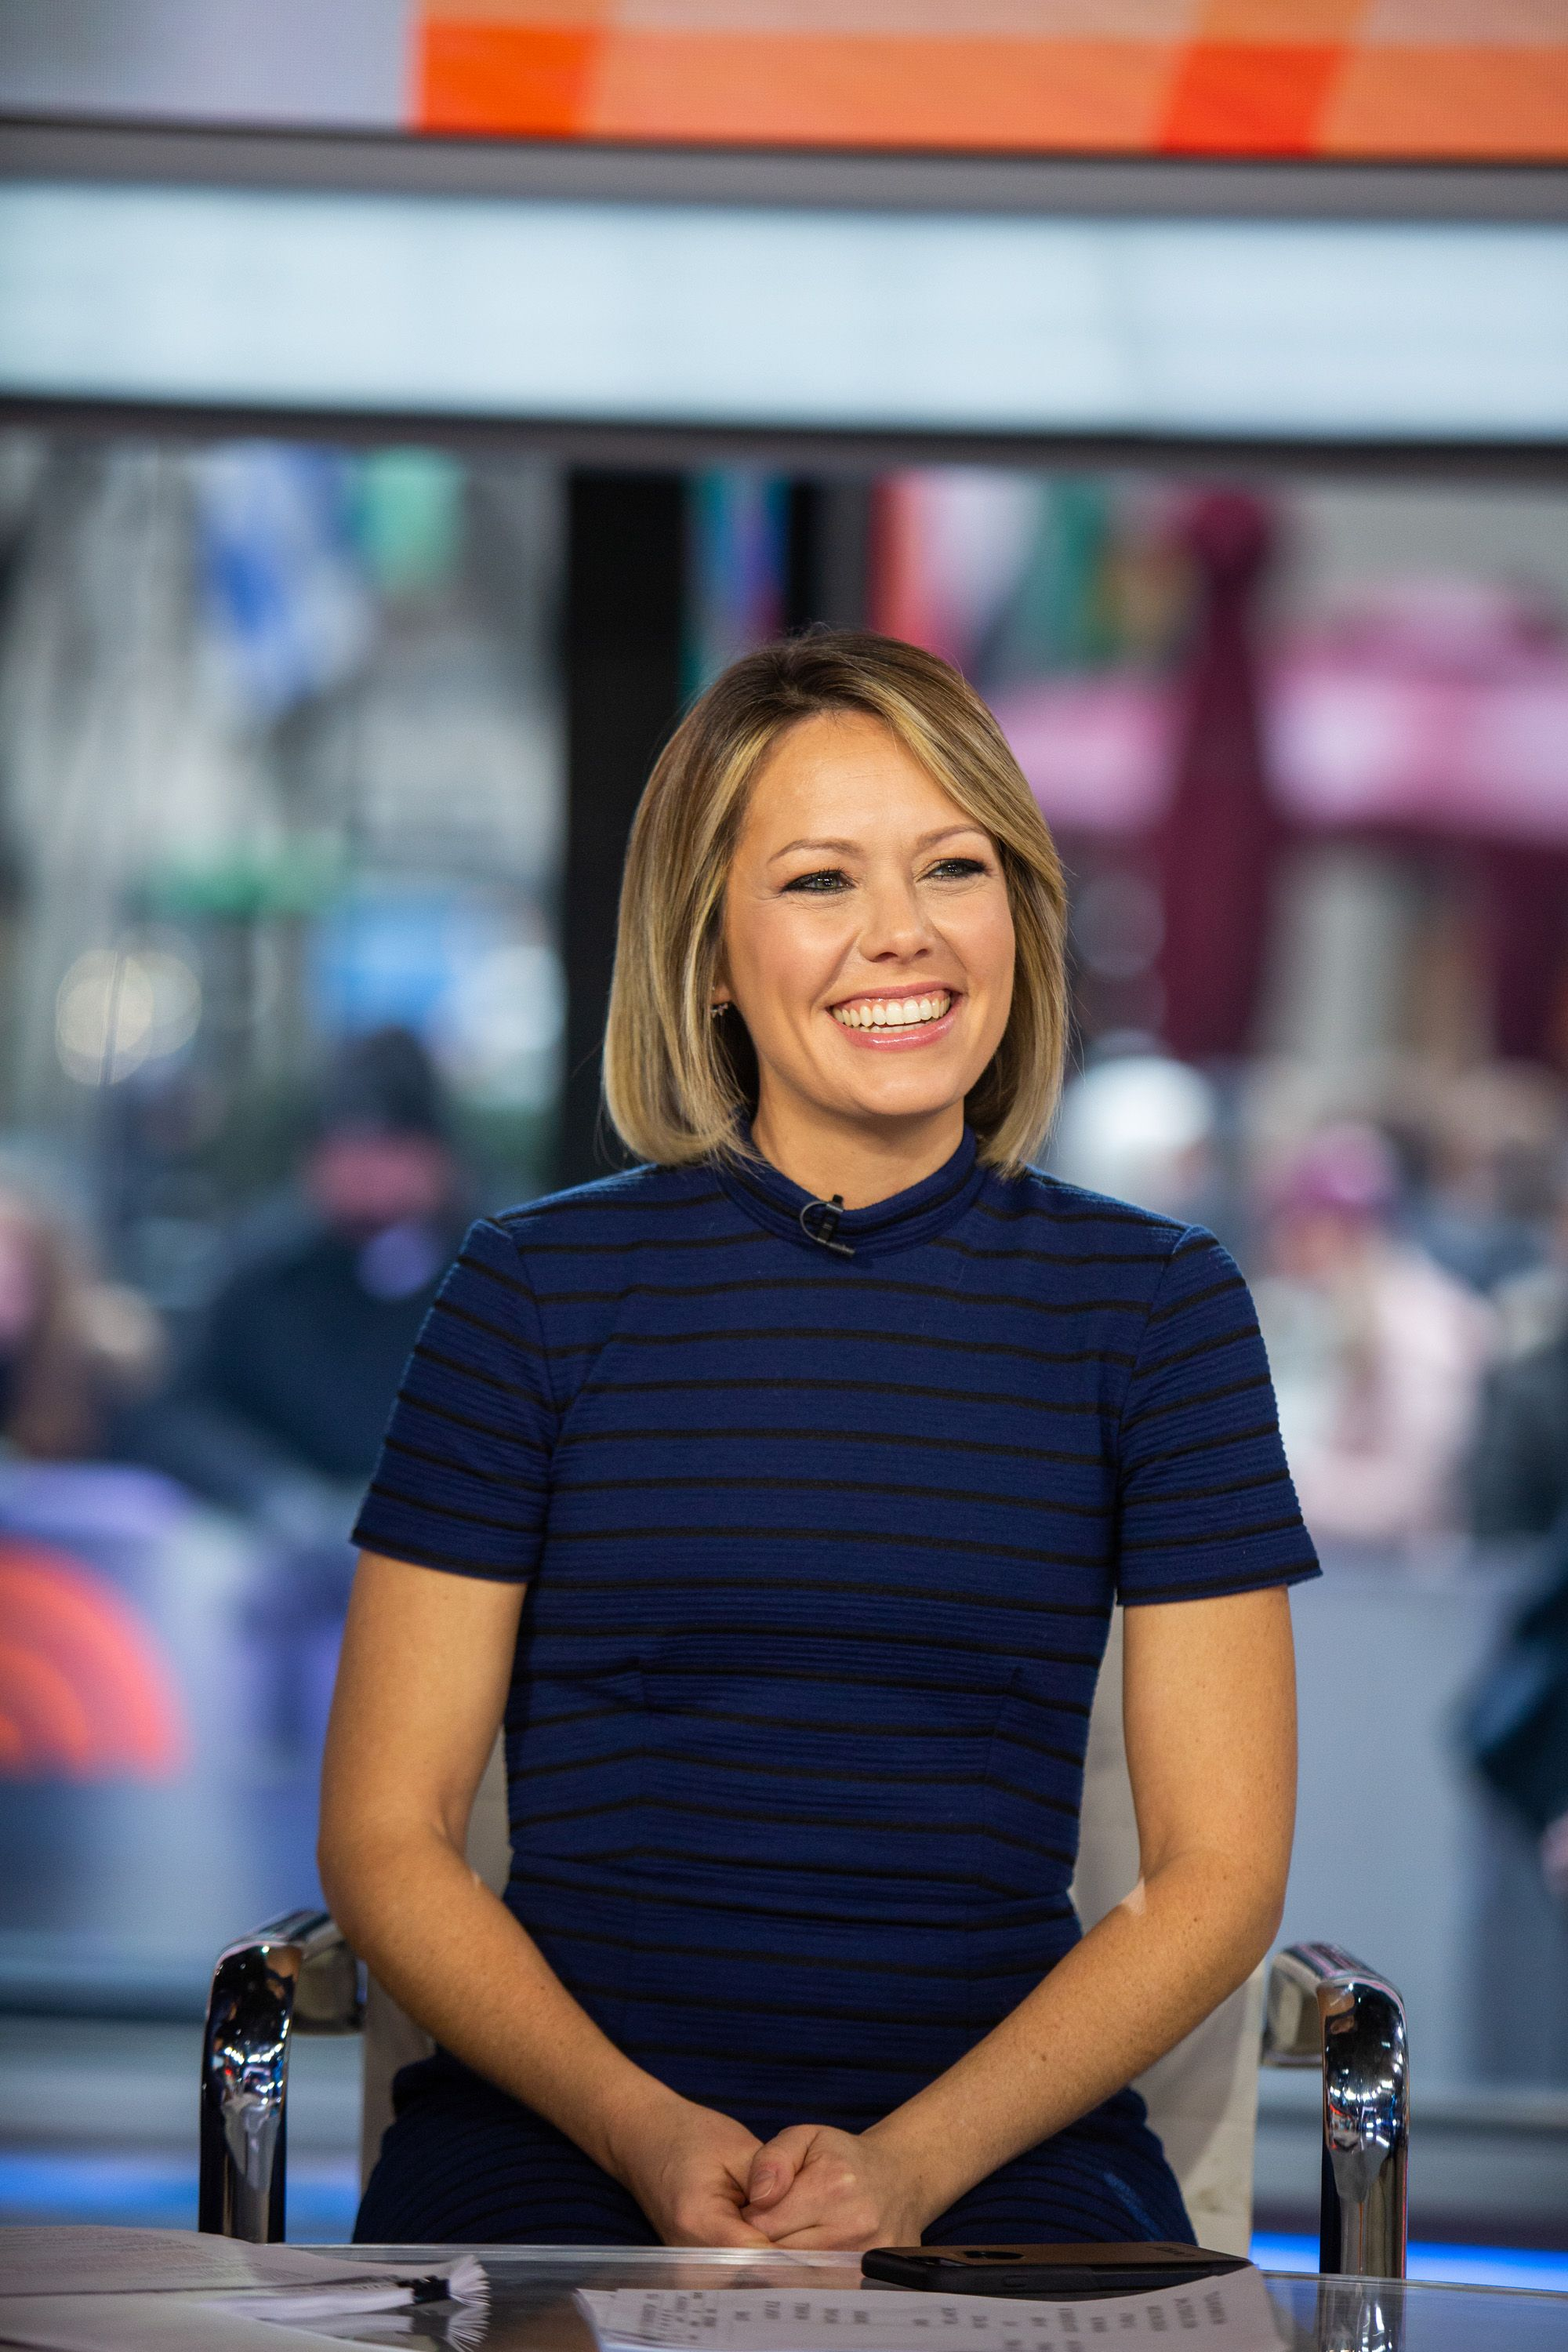 'TODAY' Host Dylan Dreyer Is Pregnant After A Struggle With Secondary Infertility, Miscarriage